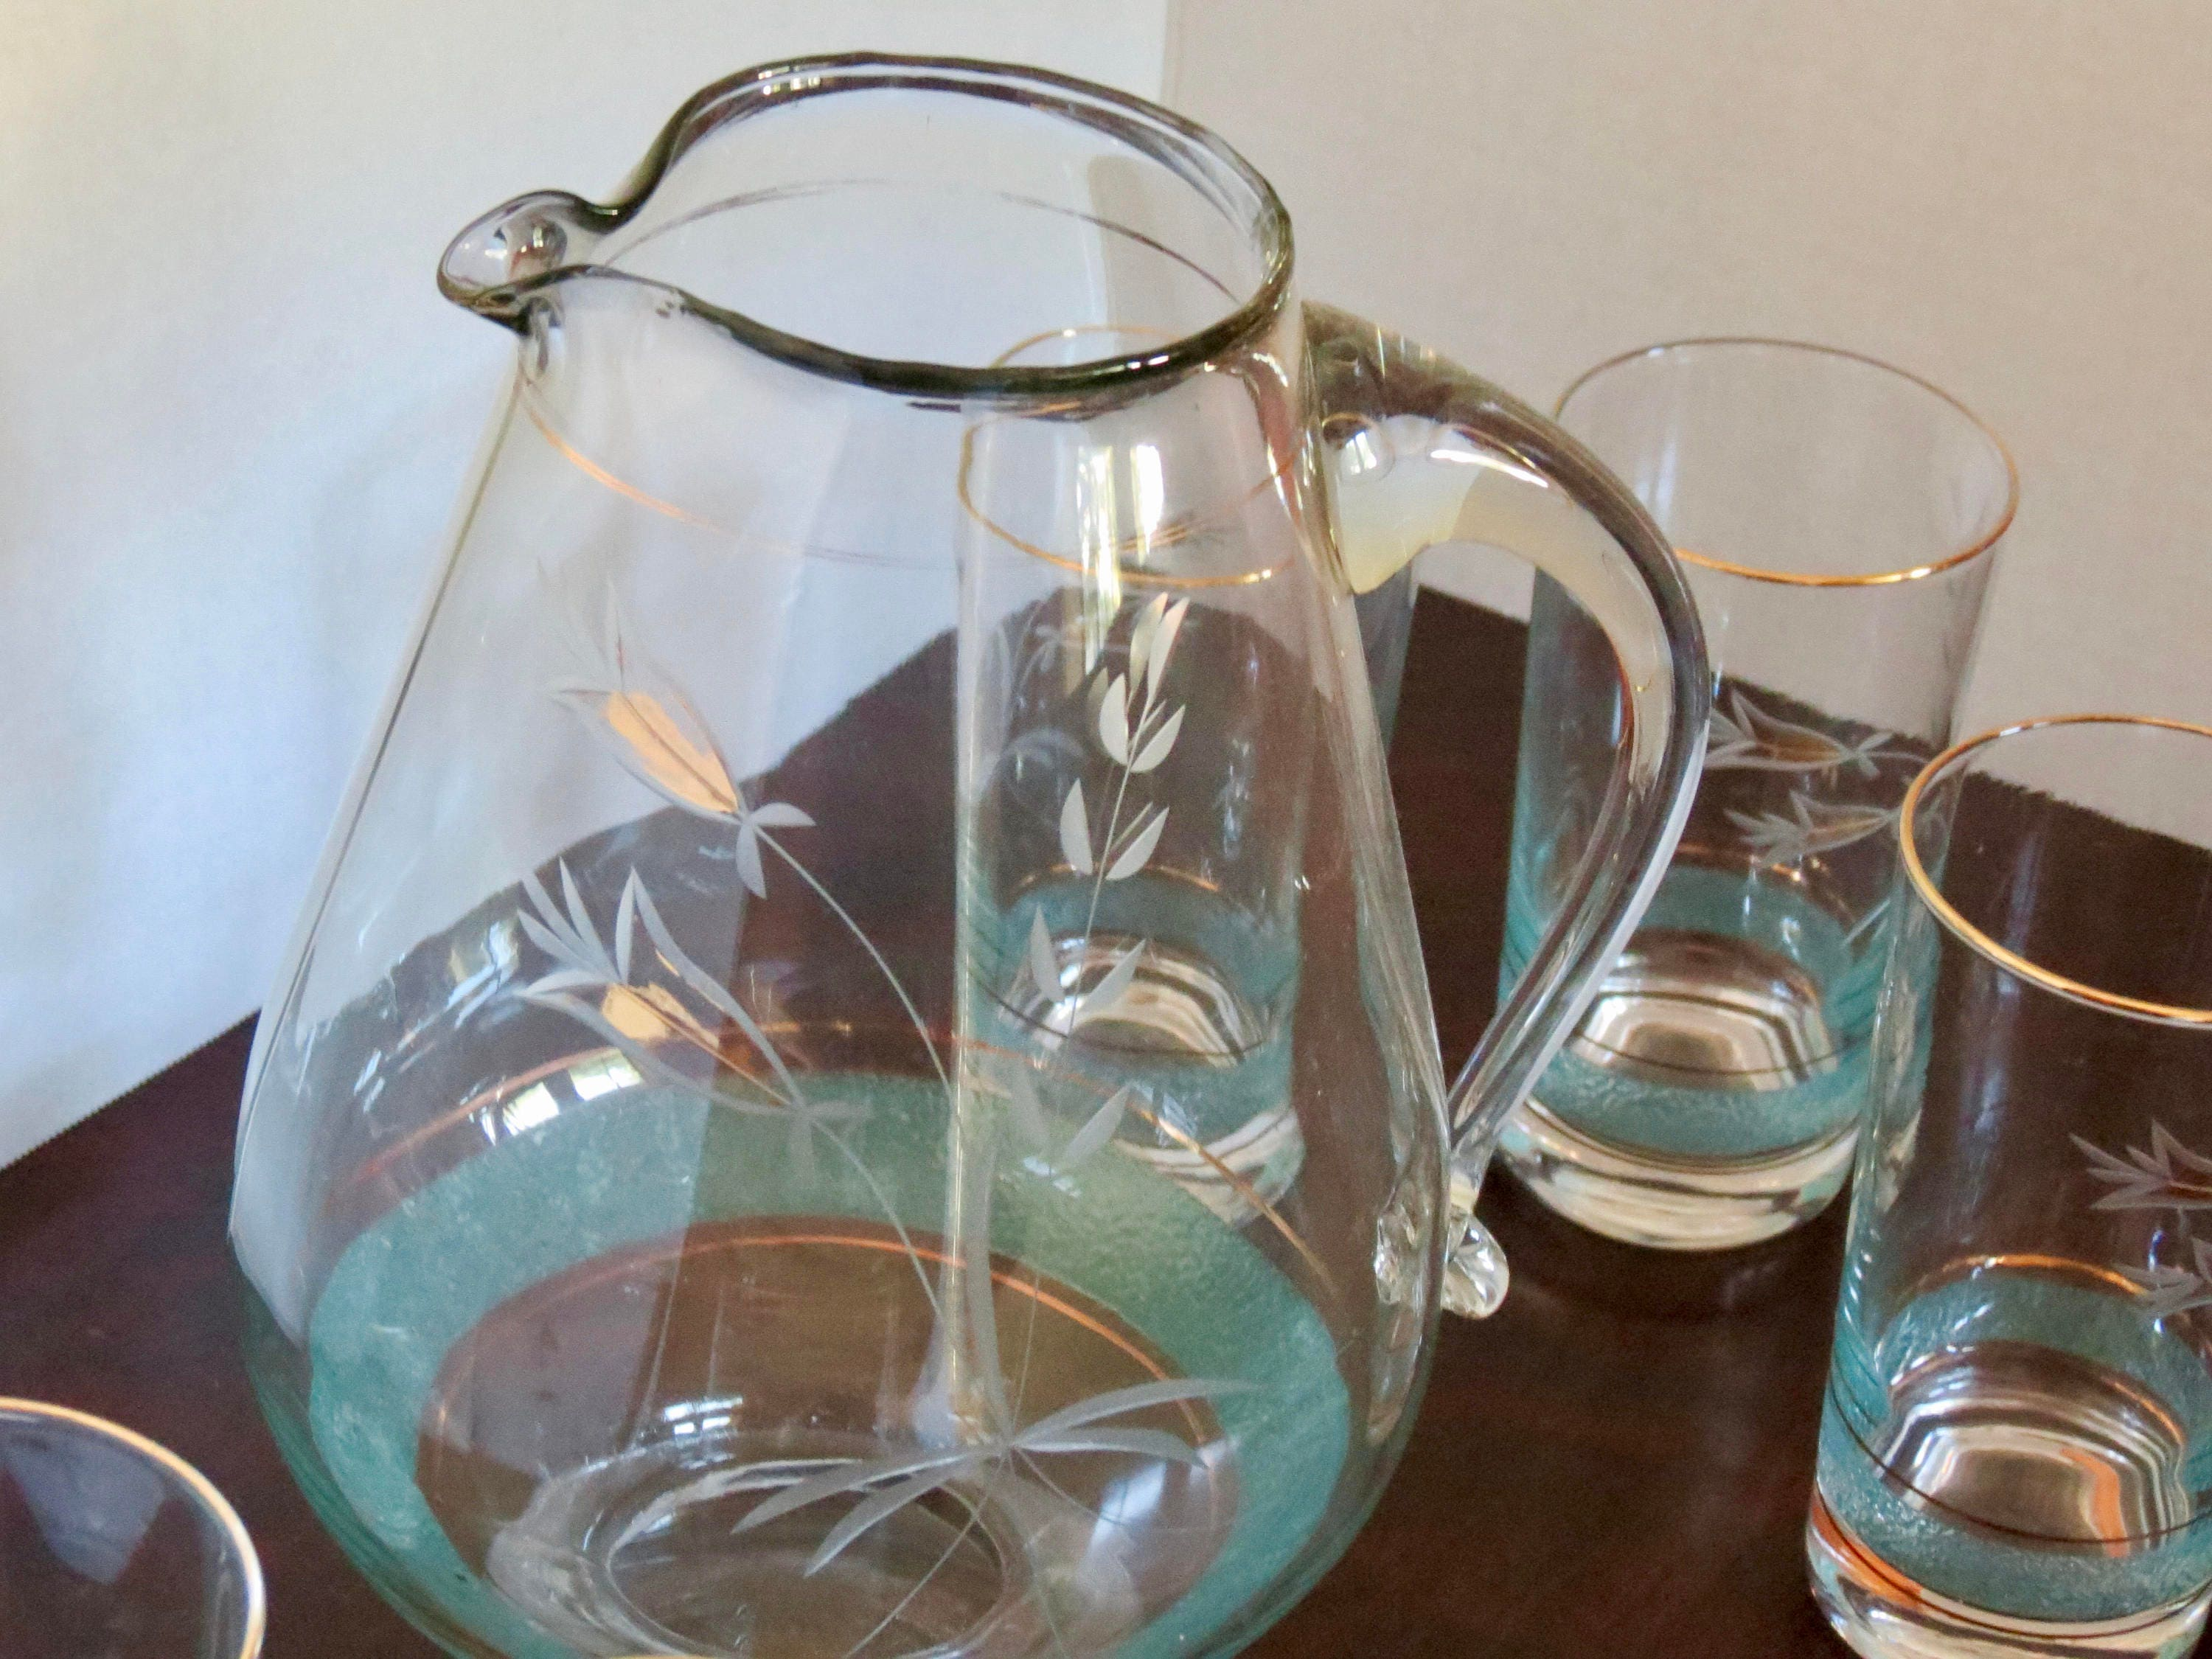 Image 8 of Vintage Pitcher Set - Mid Century Turquoise and Gold Graphics, Pitcher with Six